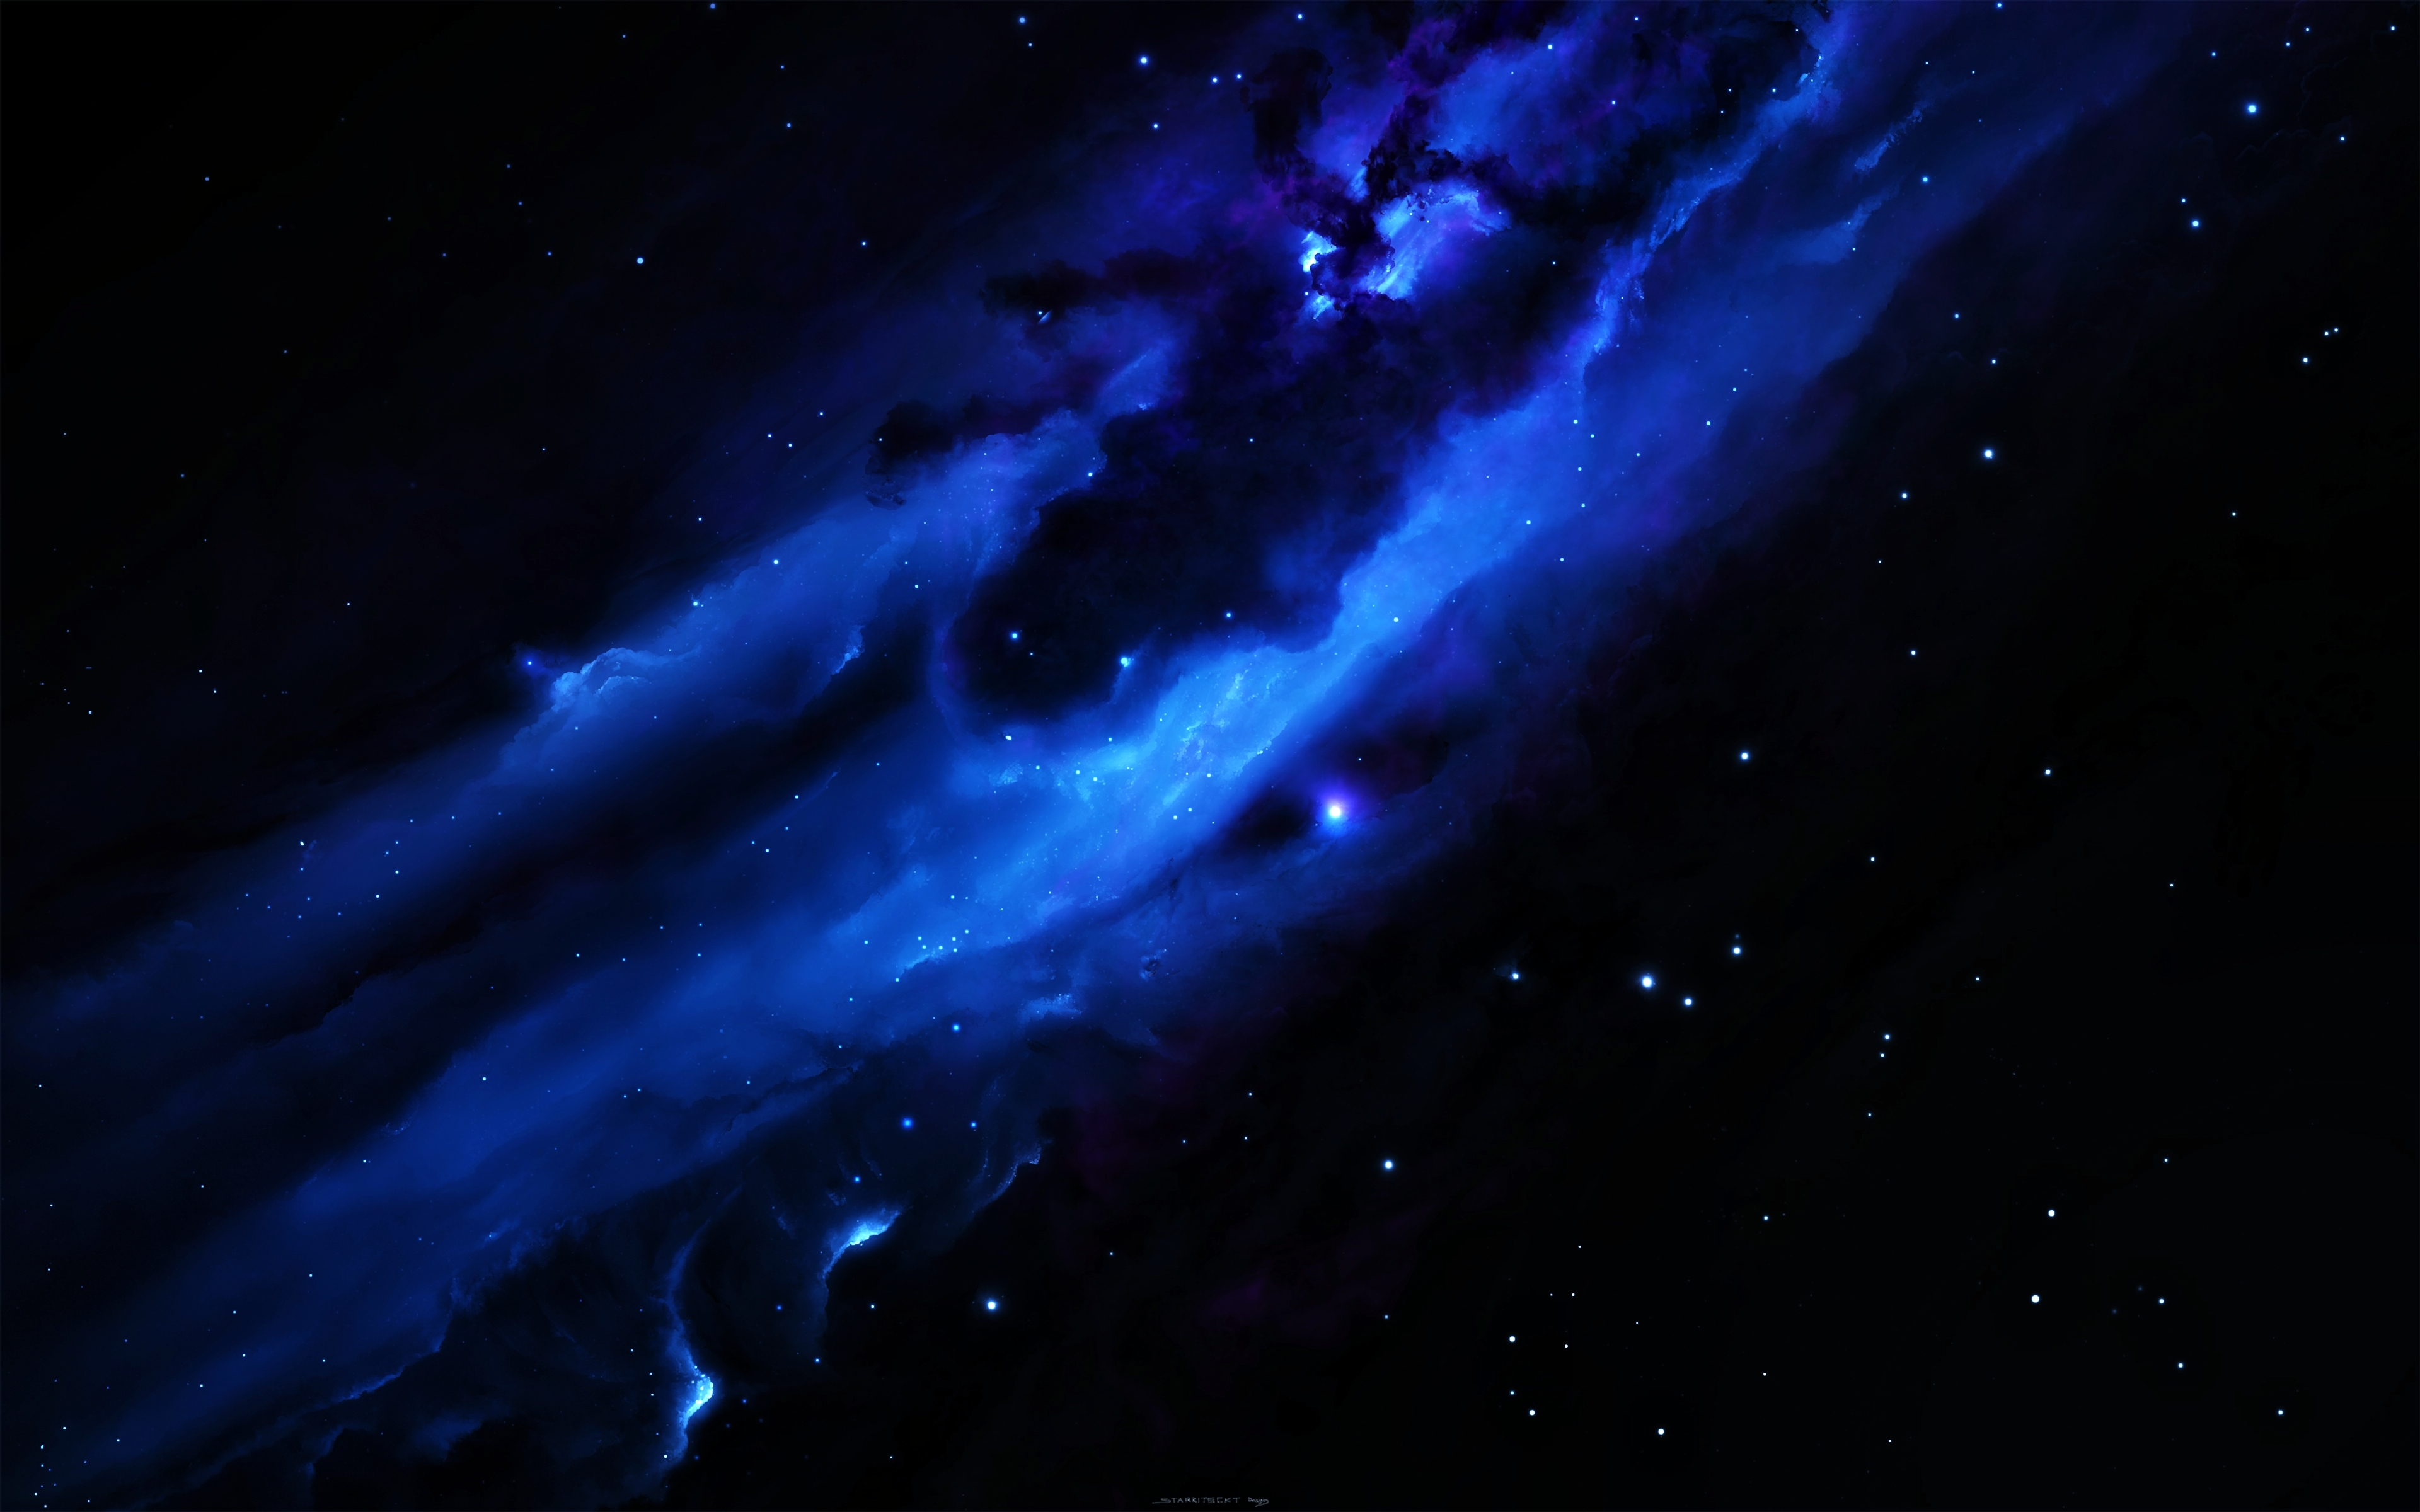 43 4k ultra hd space wallpapers | background images - wallpaper abyss